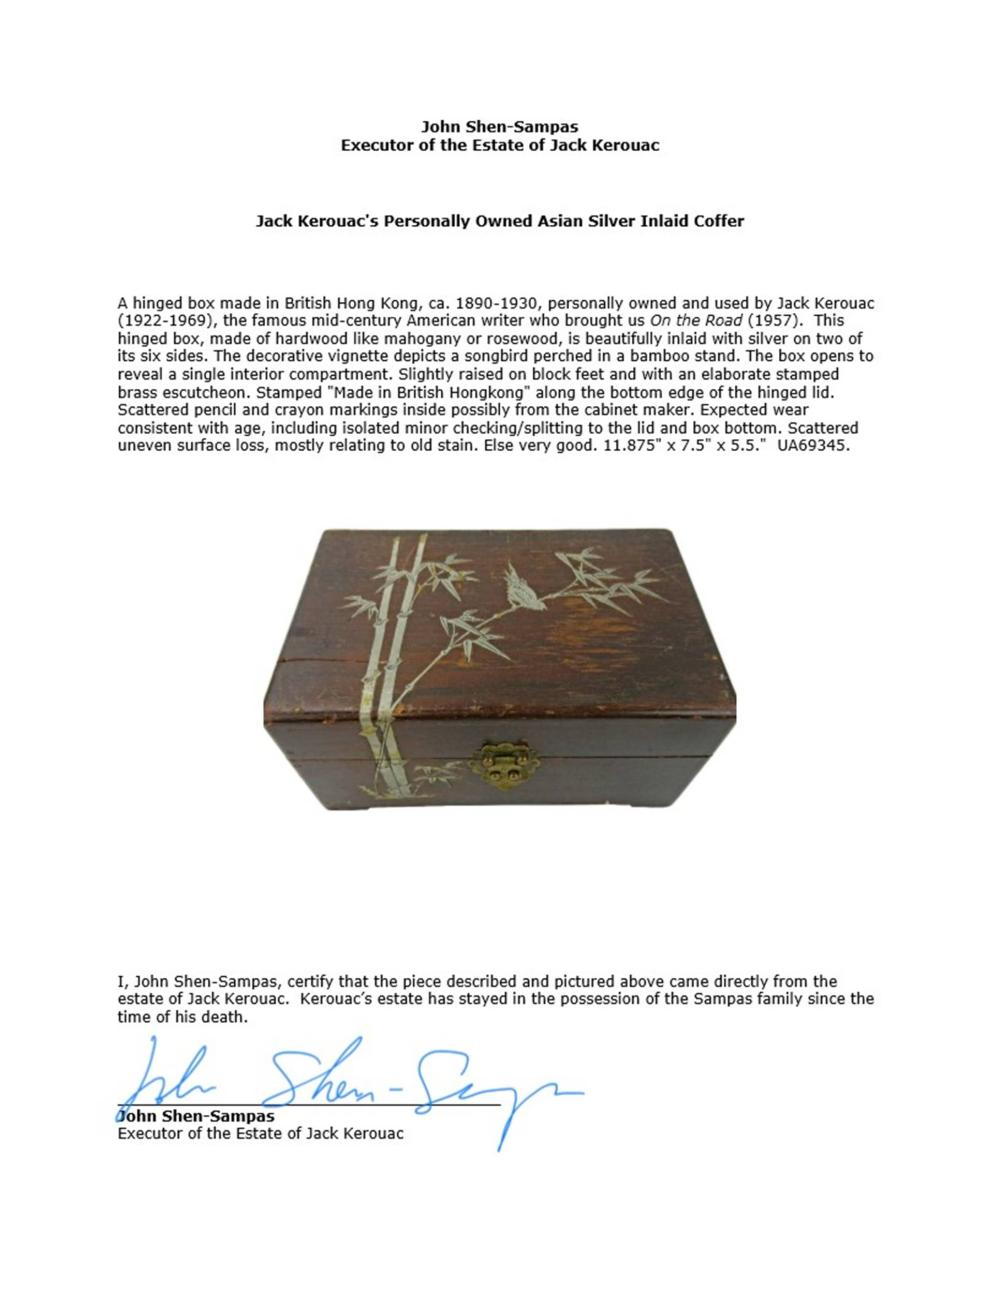 Jack Kerouac's Personally Owned Asian Silver Inlaid Coffer